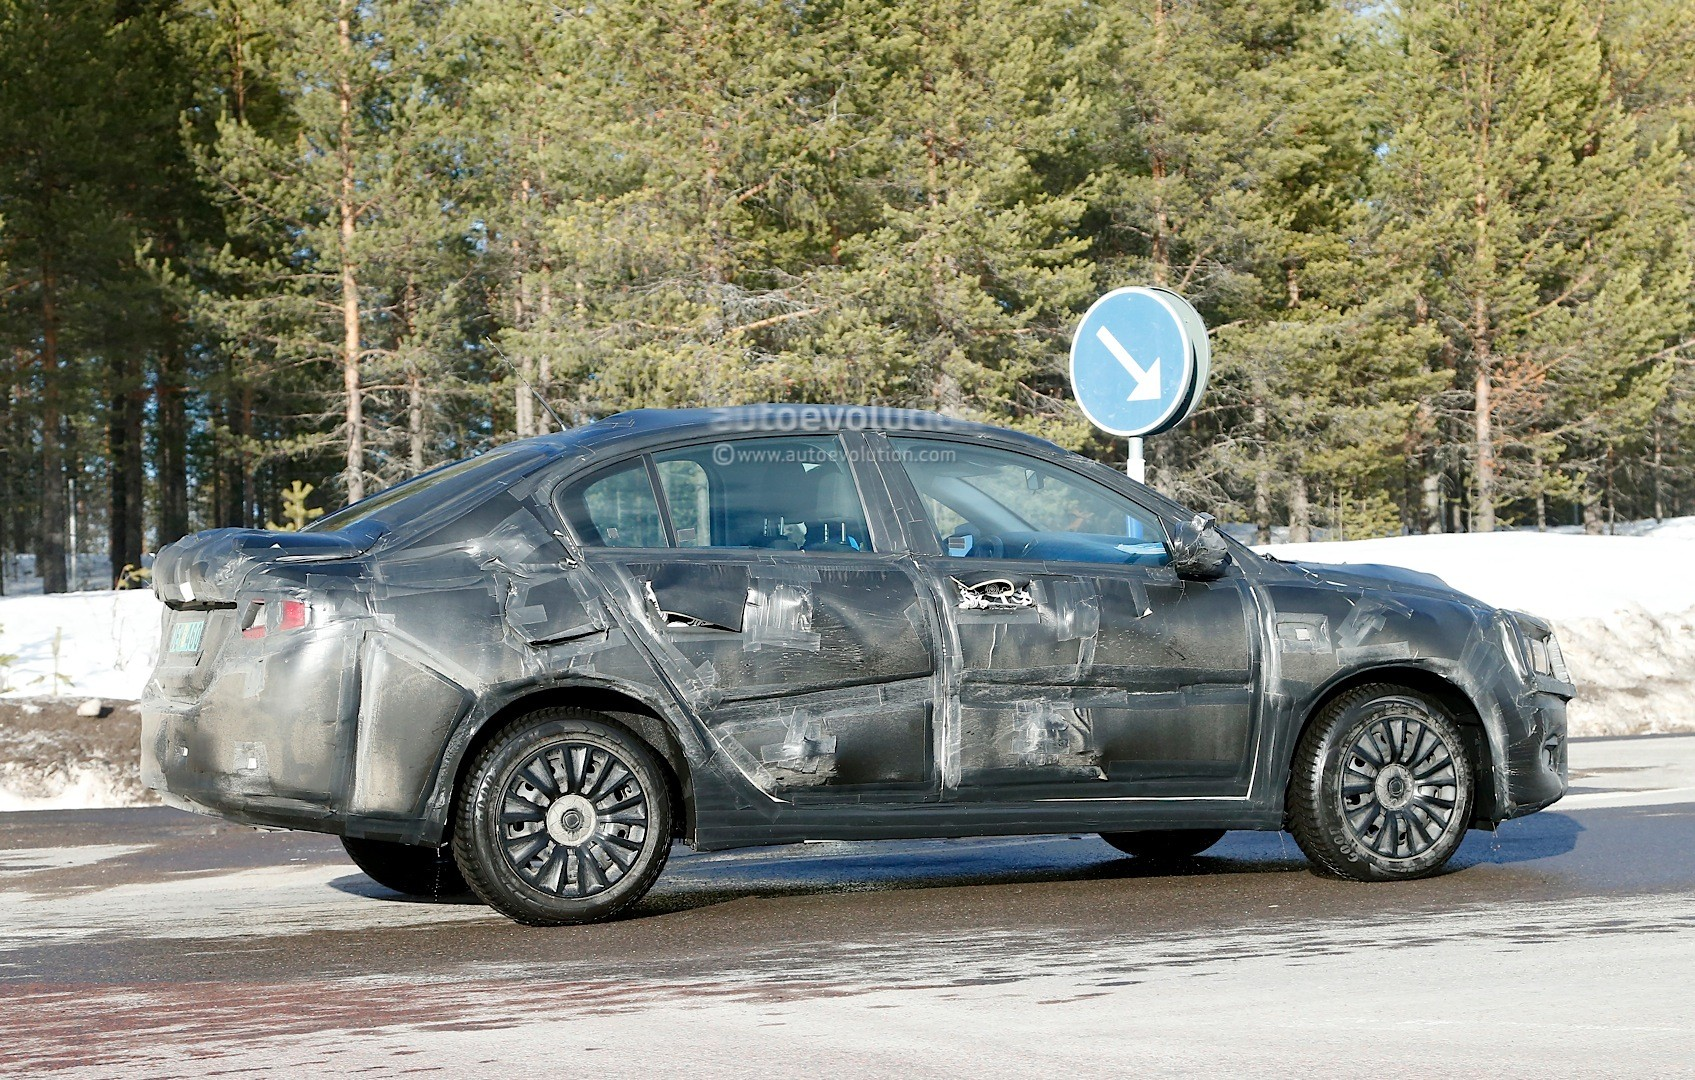 Spyshots All New Fiat Linea Compact Sedan Spotted For The First Time on Fiat 500 Electric Car